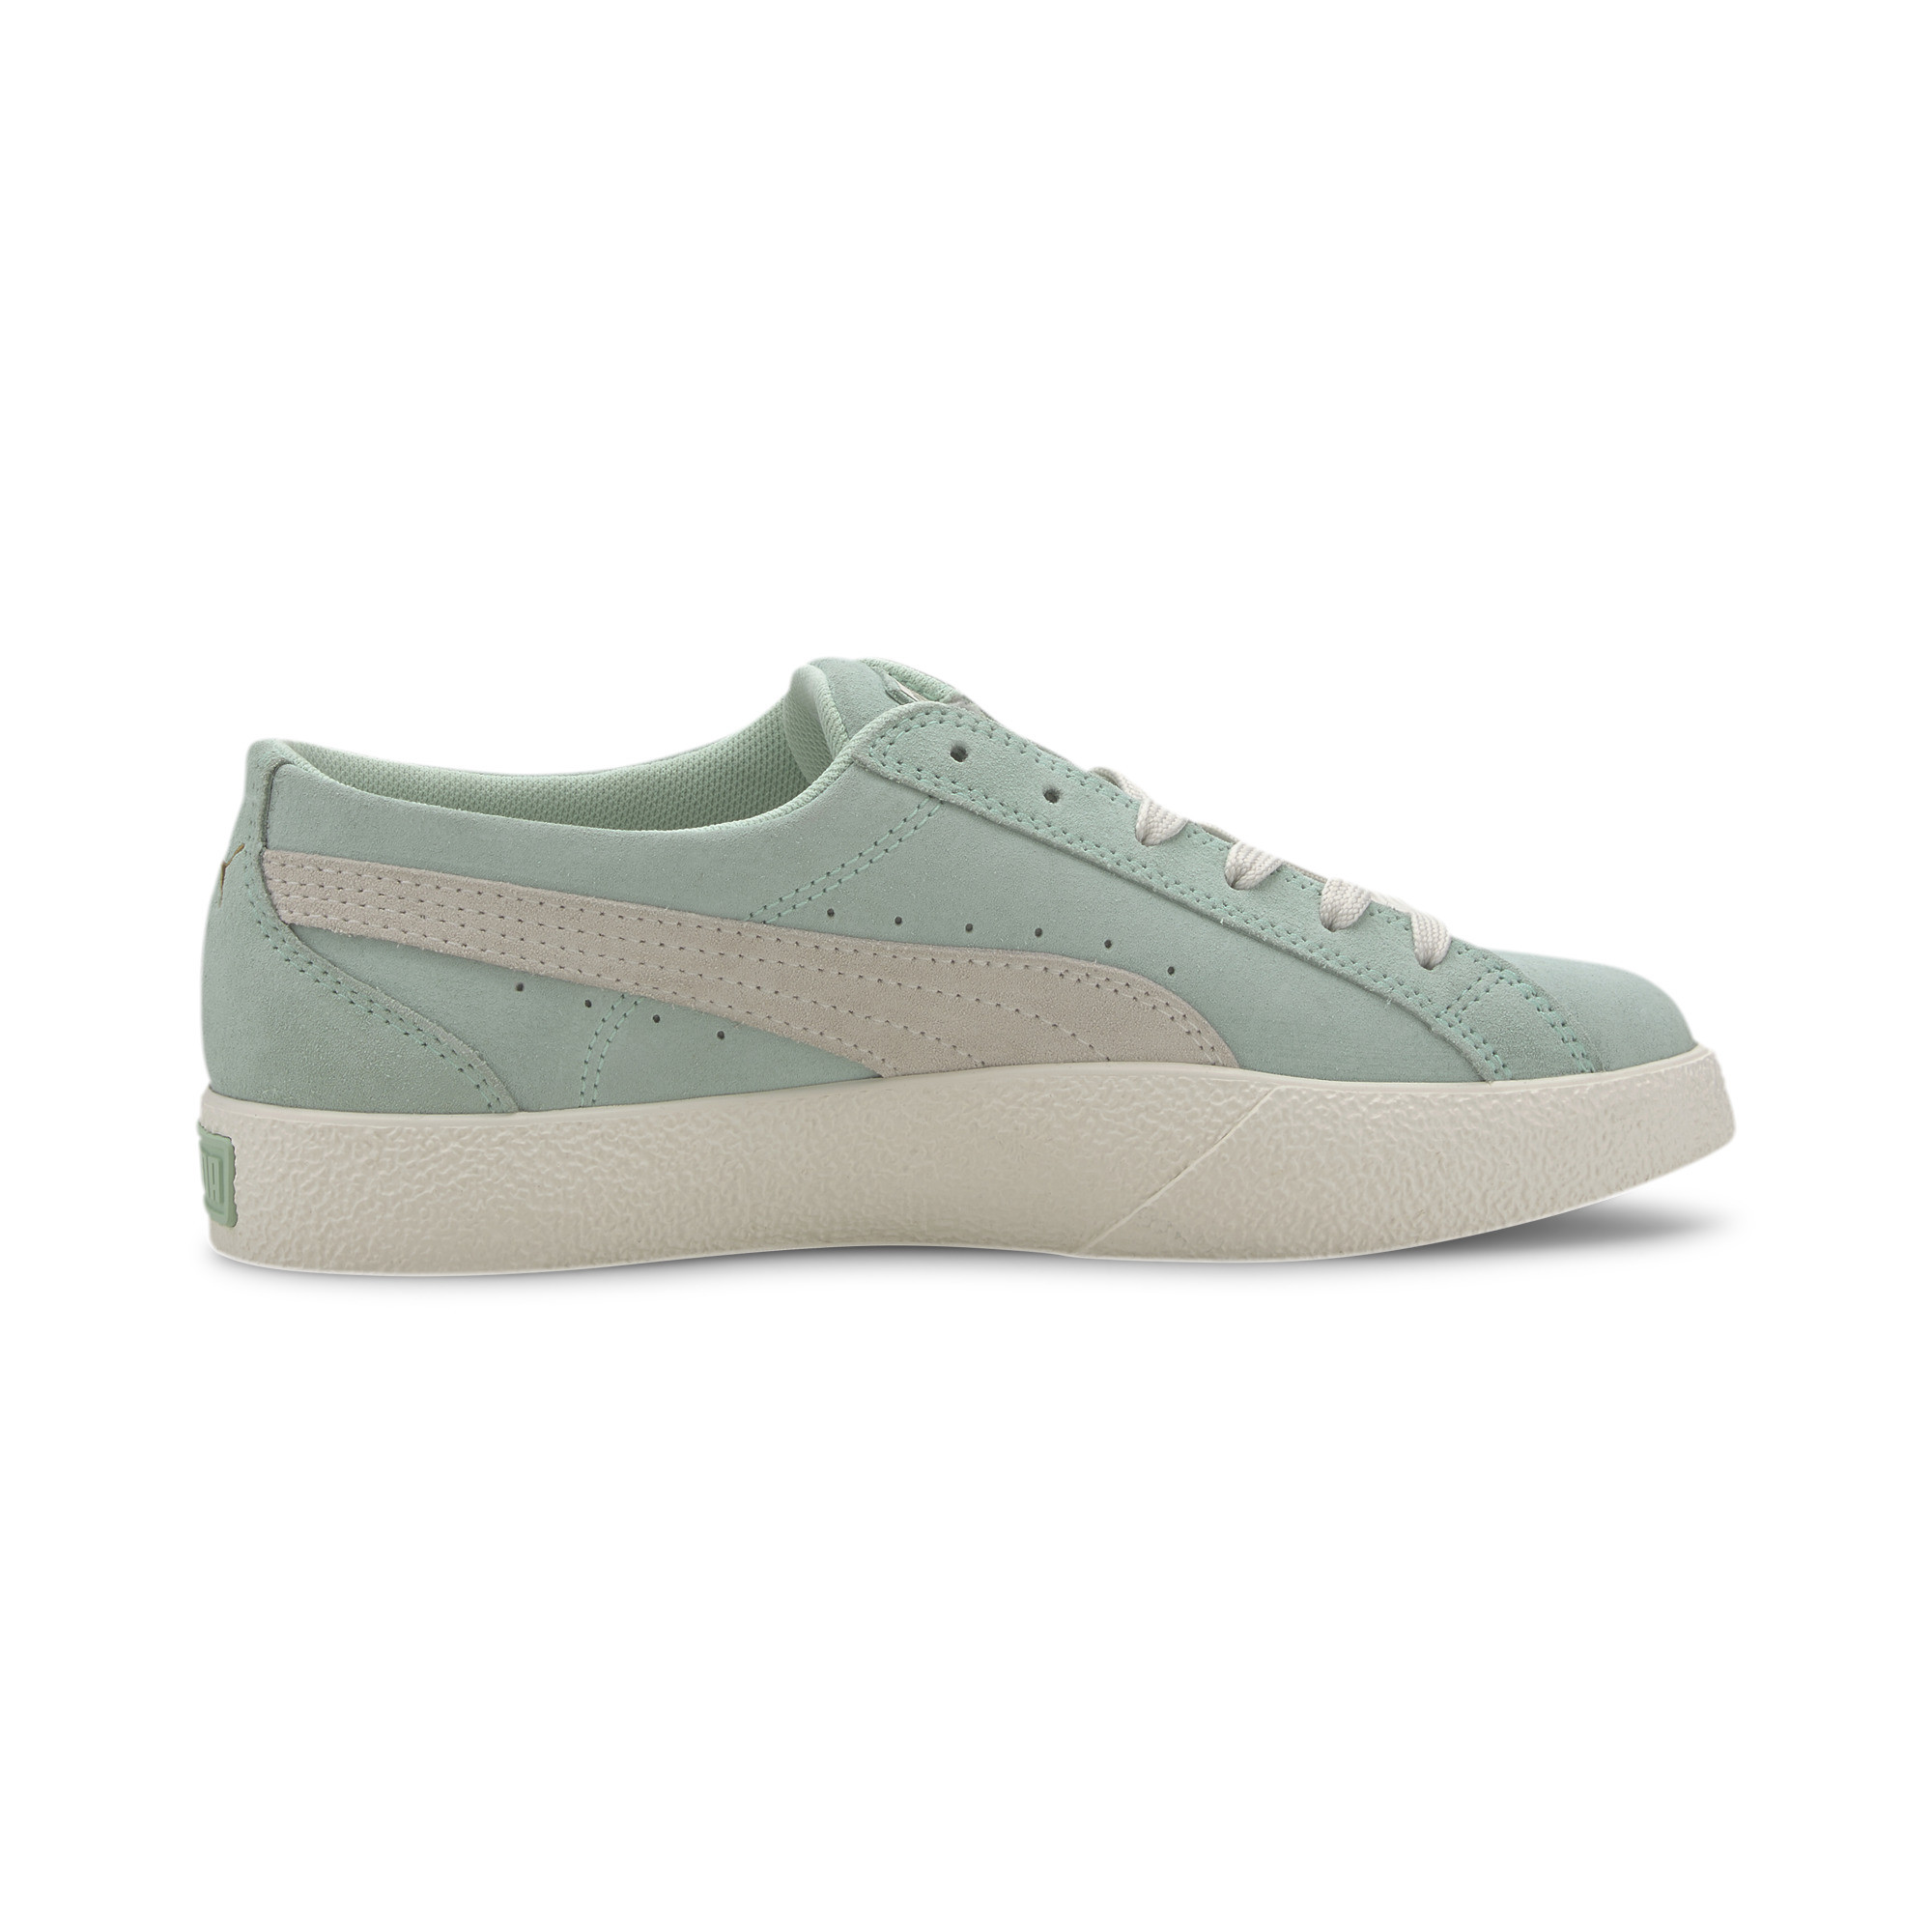 PUMA-Women-039-s-Love-Suede-Sneakers thumbnail 14